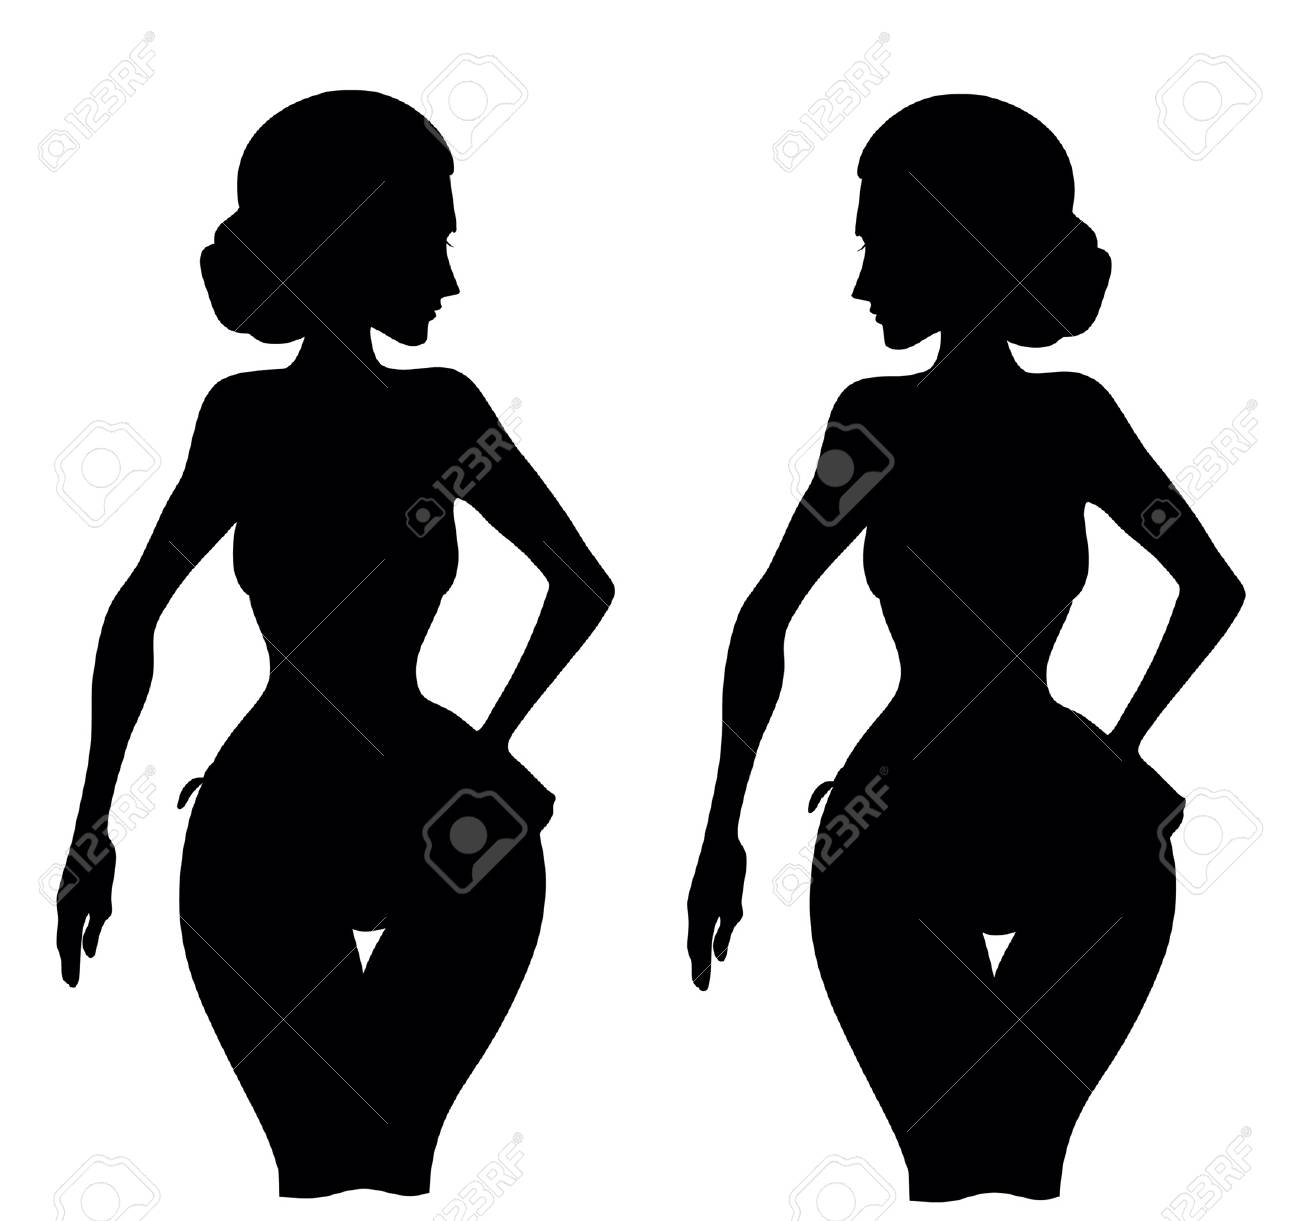 woman silhouette isolated on white background Stock Vector - 16024480